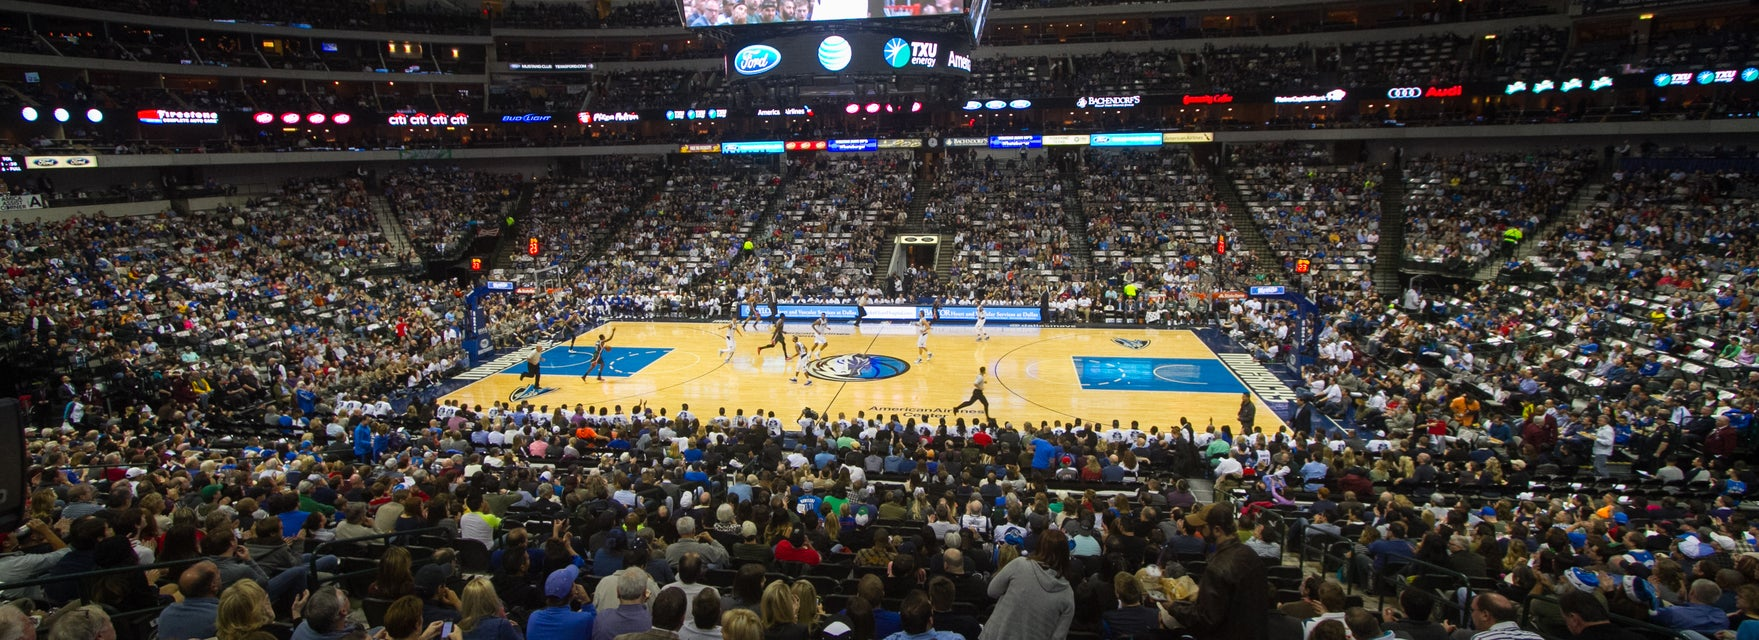 Seat view from Floor